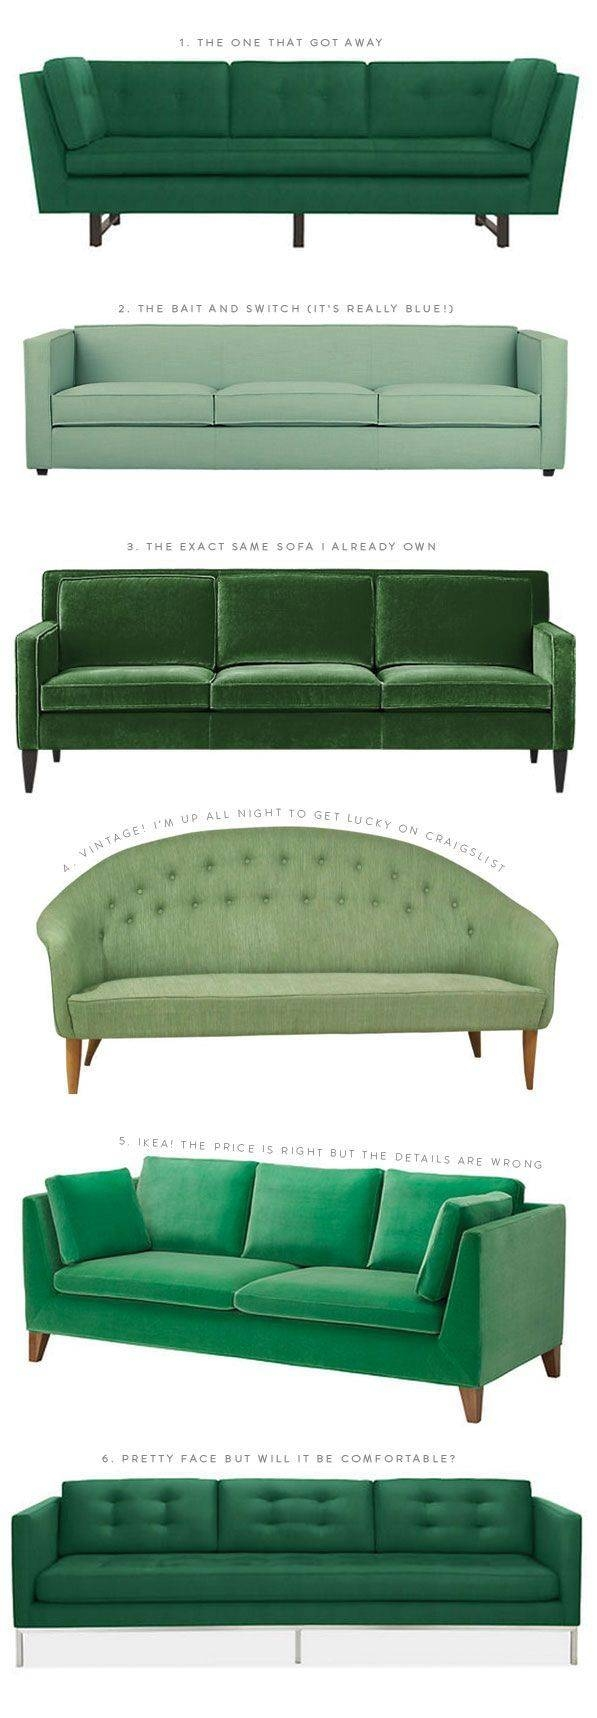 307 Best Sofas & Chairs - Ahhhhh! Images On Pinterest | Sofas inside Chintz Fabric Sofas (Image 2 of 30)